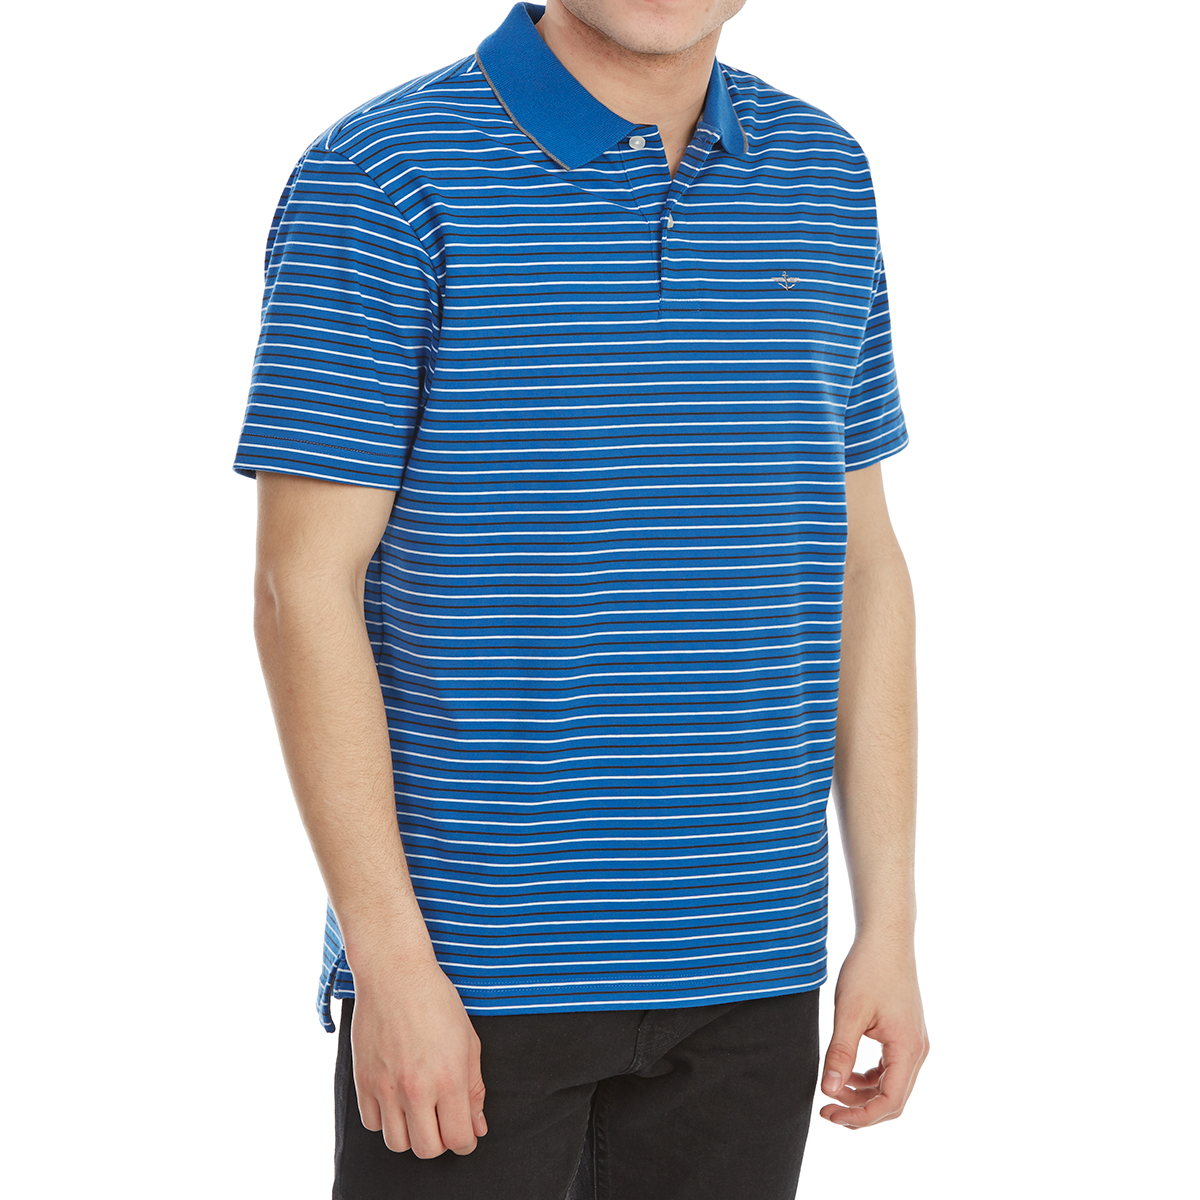 Dockers Men's Performance Stripe Short-Sleeve Polo Shirt - Blue, M